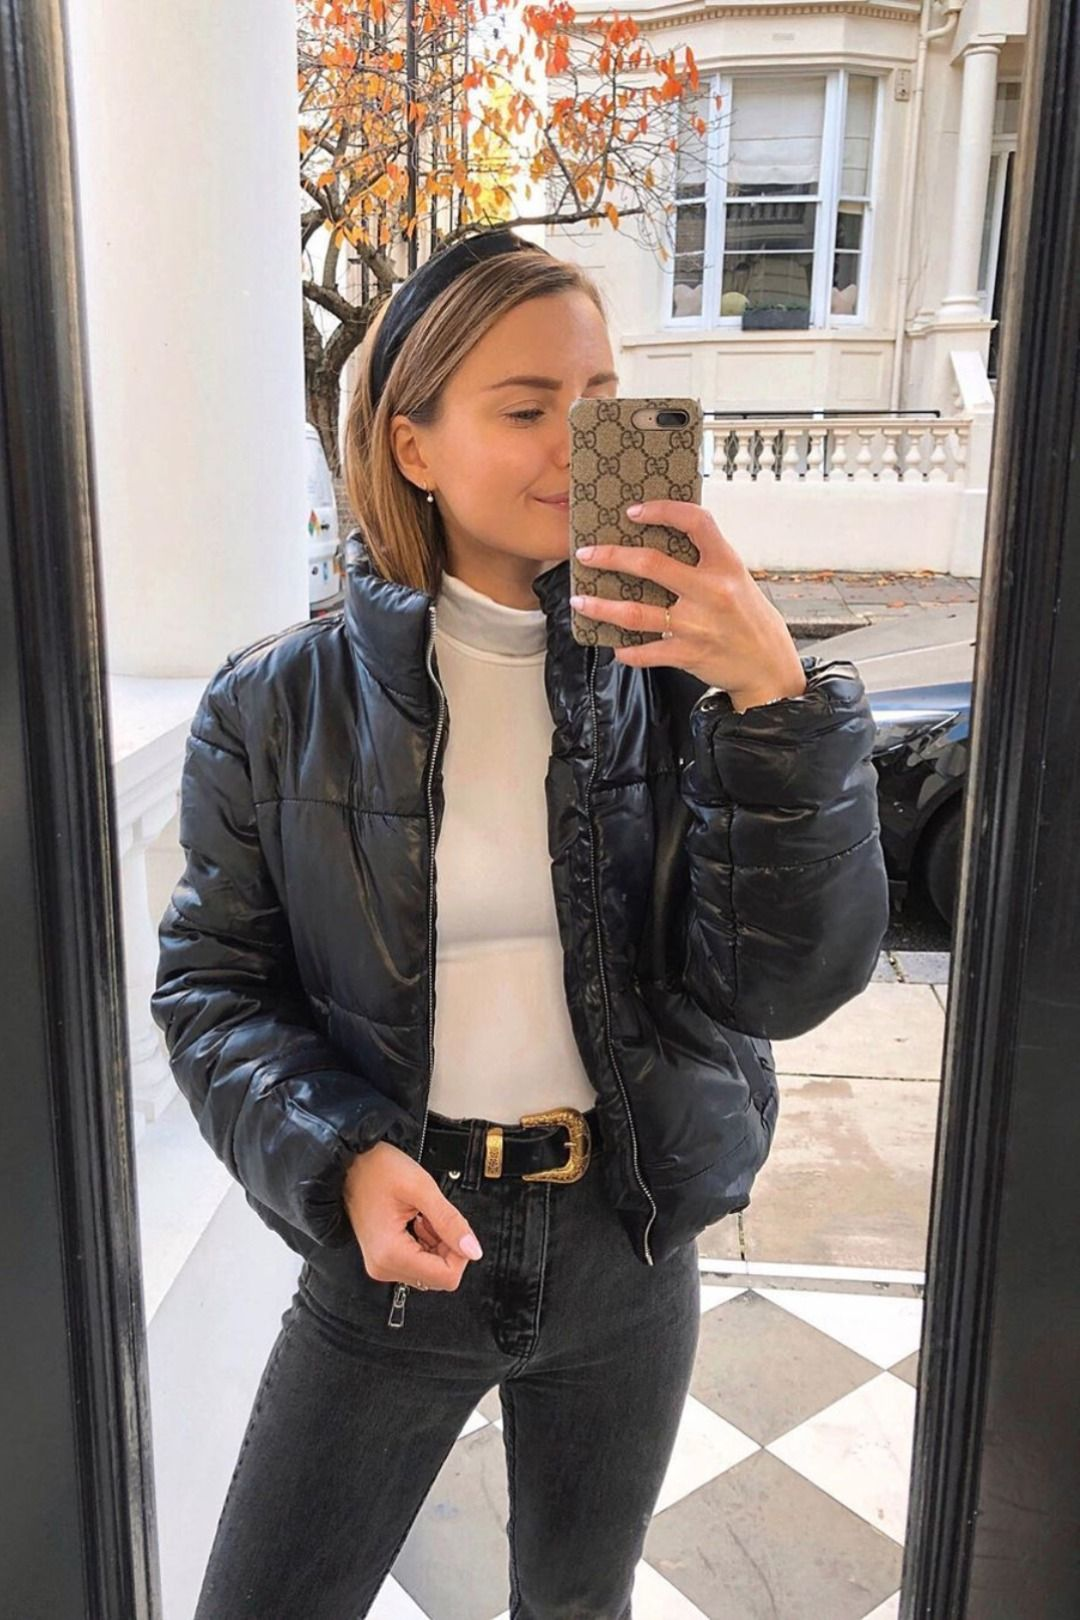 Women S Winter Wear Skinny Jeans Black Jacket Mirror Selfie Cool Stylish Going Out Outfit In Cropped Puffer Jacket Winter Jacket Outfits Winter Fashion Outfits [ 1620 x 1080 Pixel ]